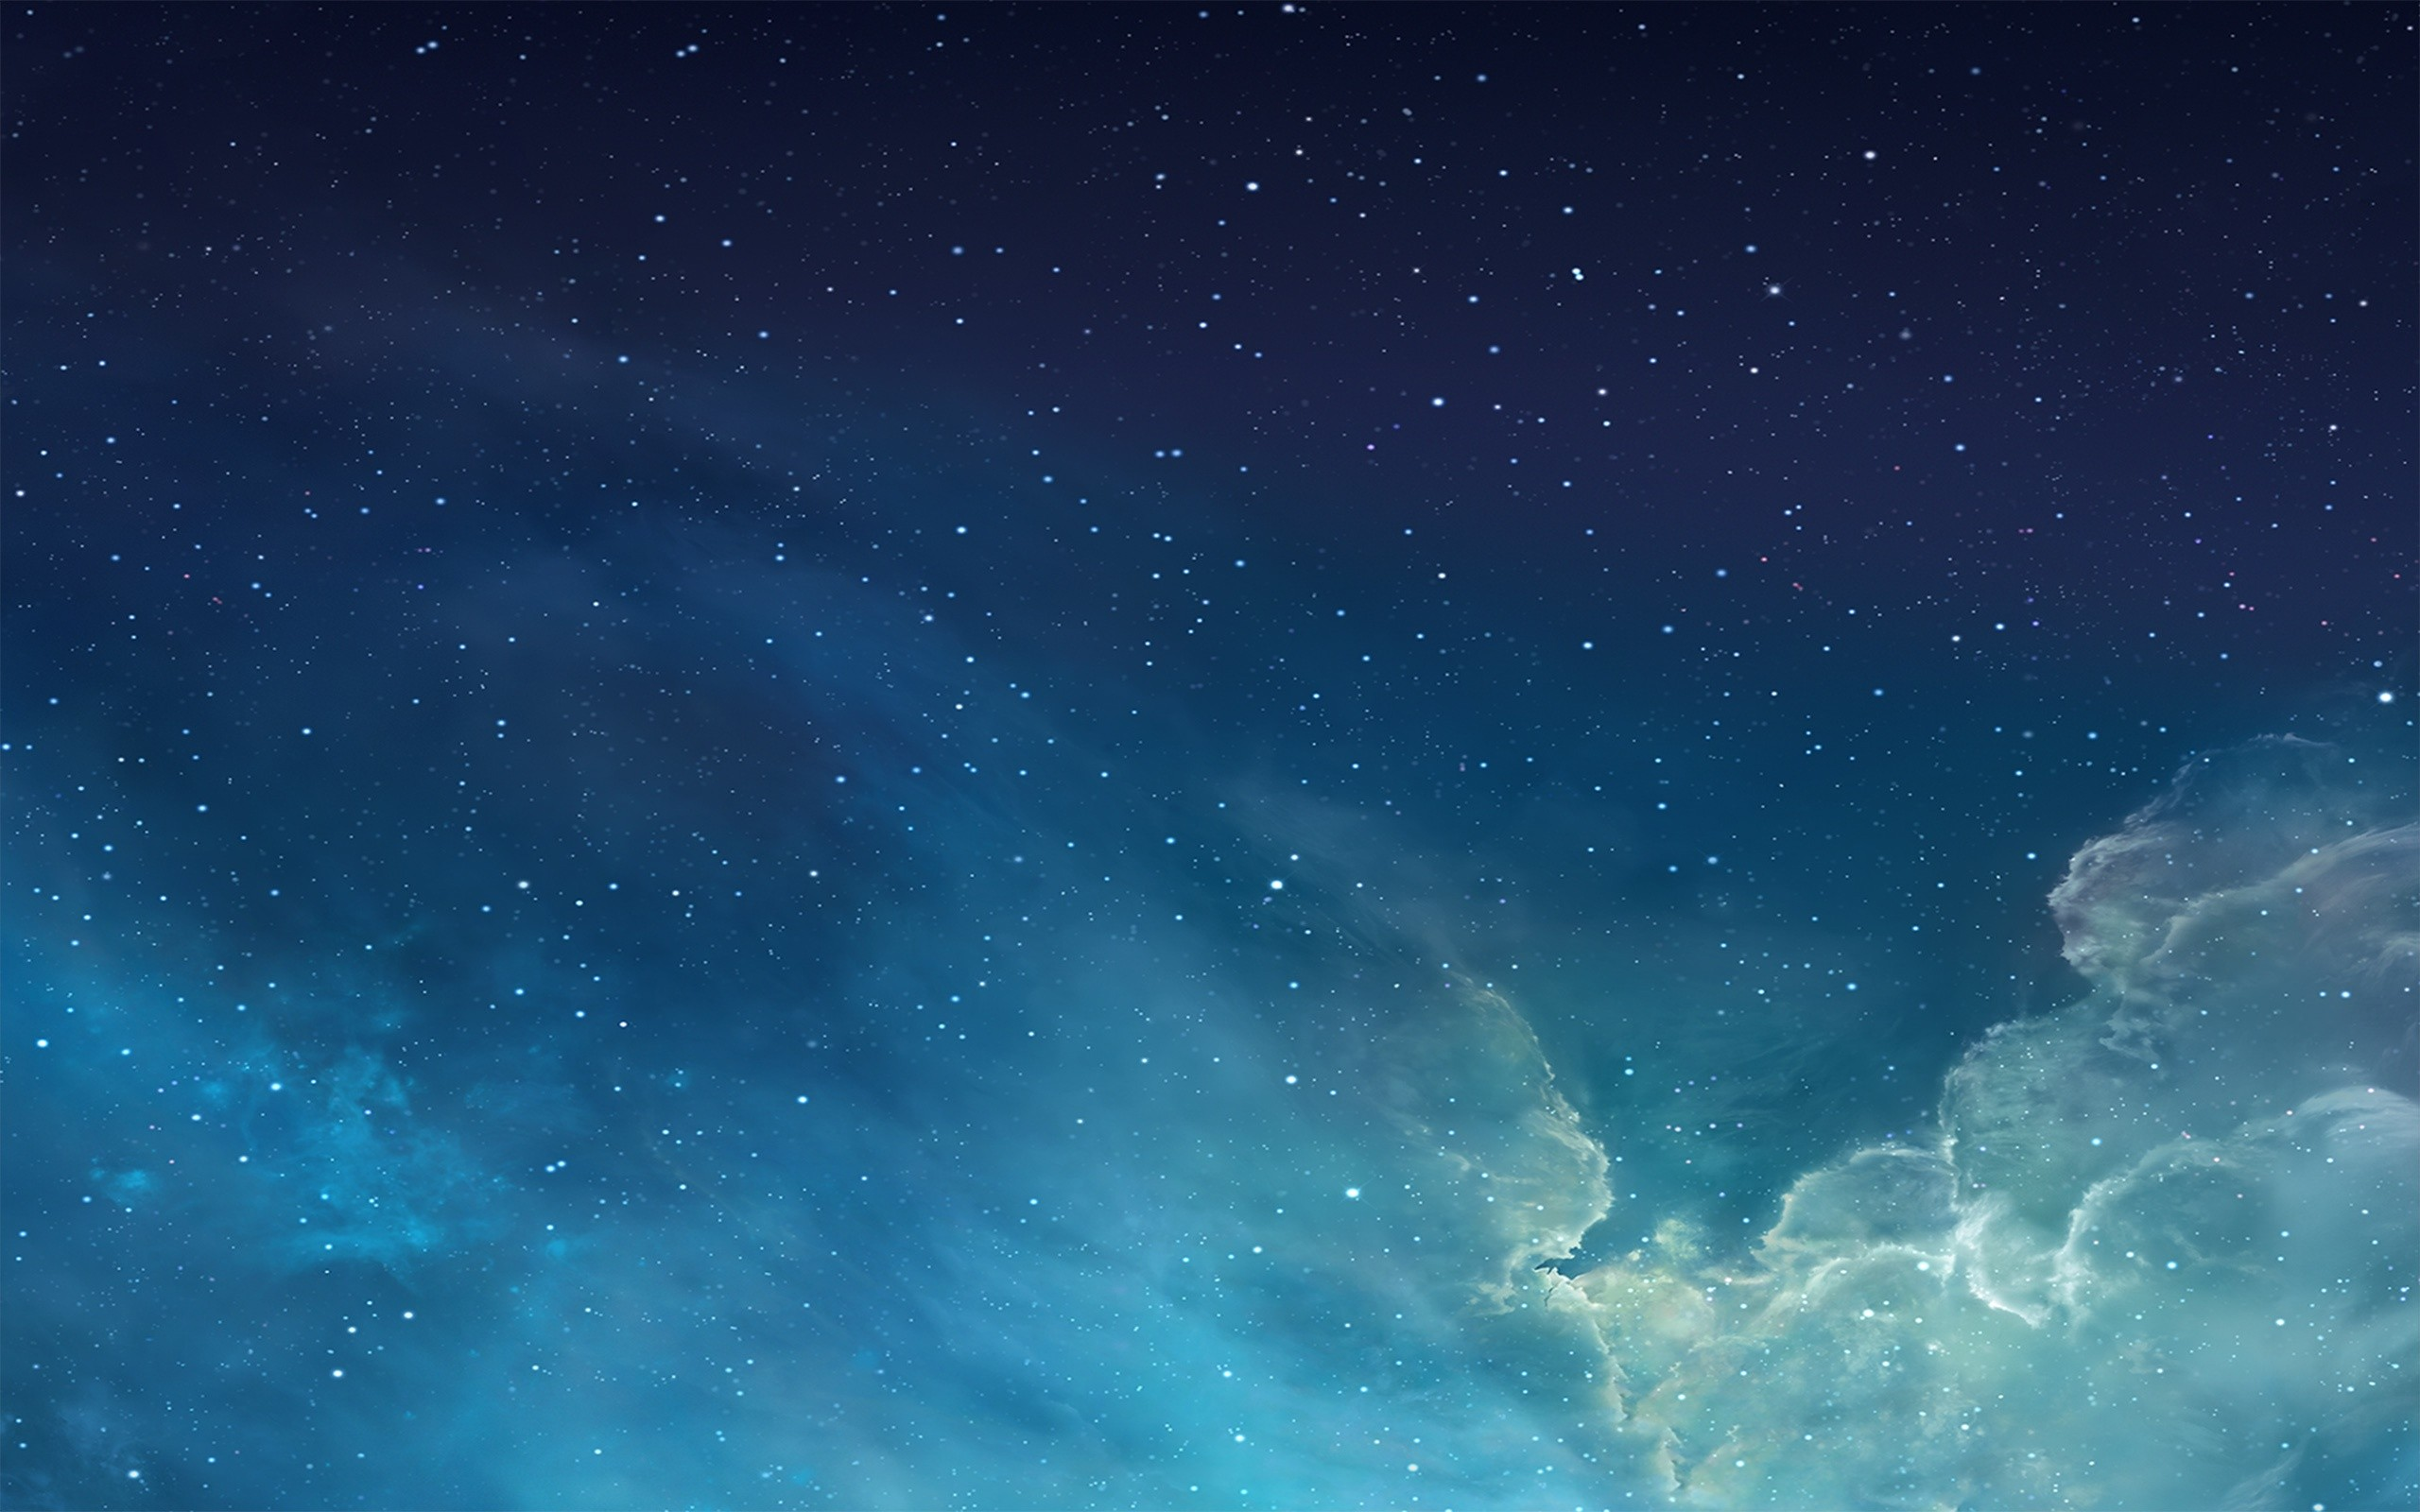 Blue Galaxy Wallpaper Download Free Amazing Full Hd Wallpapers